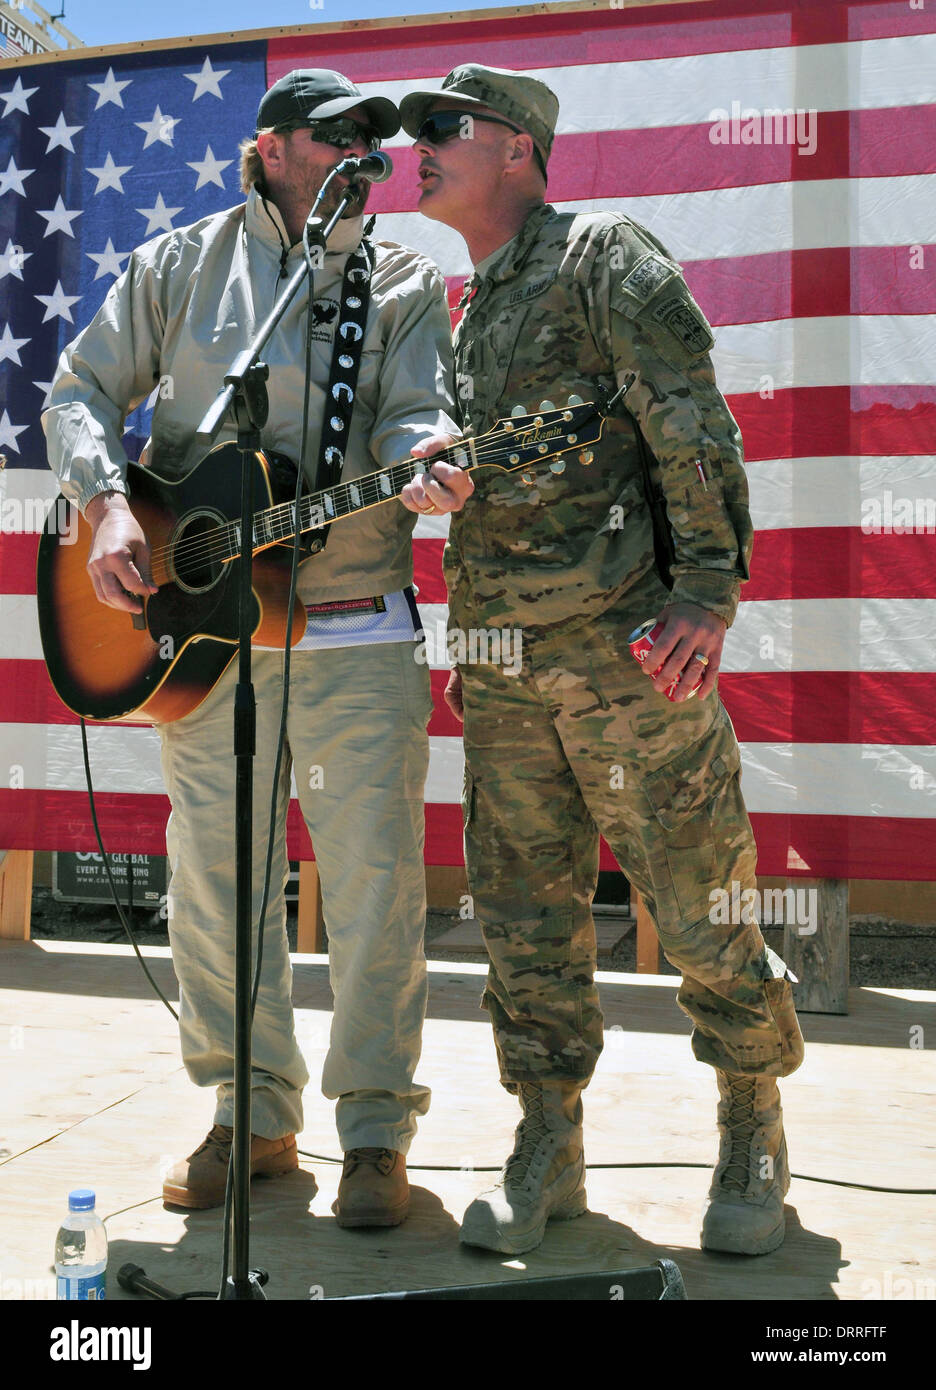 Country music singer songwriter Toby Keith performs for the troops during a surprise concert April 29, 2012 at Forward Operating Base Sharana in Paktika province, Afghanistan. - Stock Image